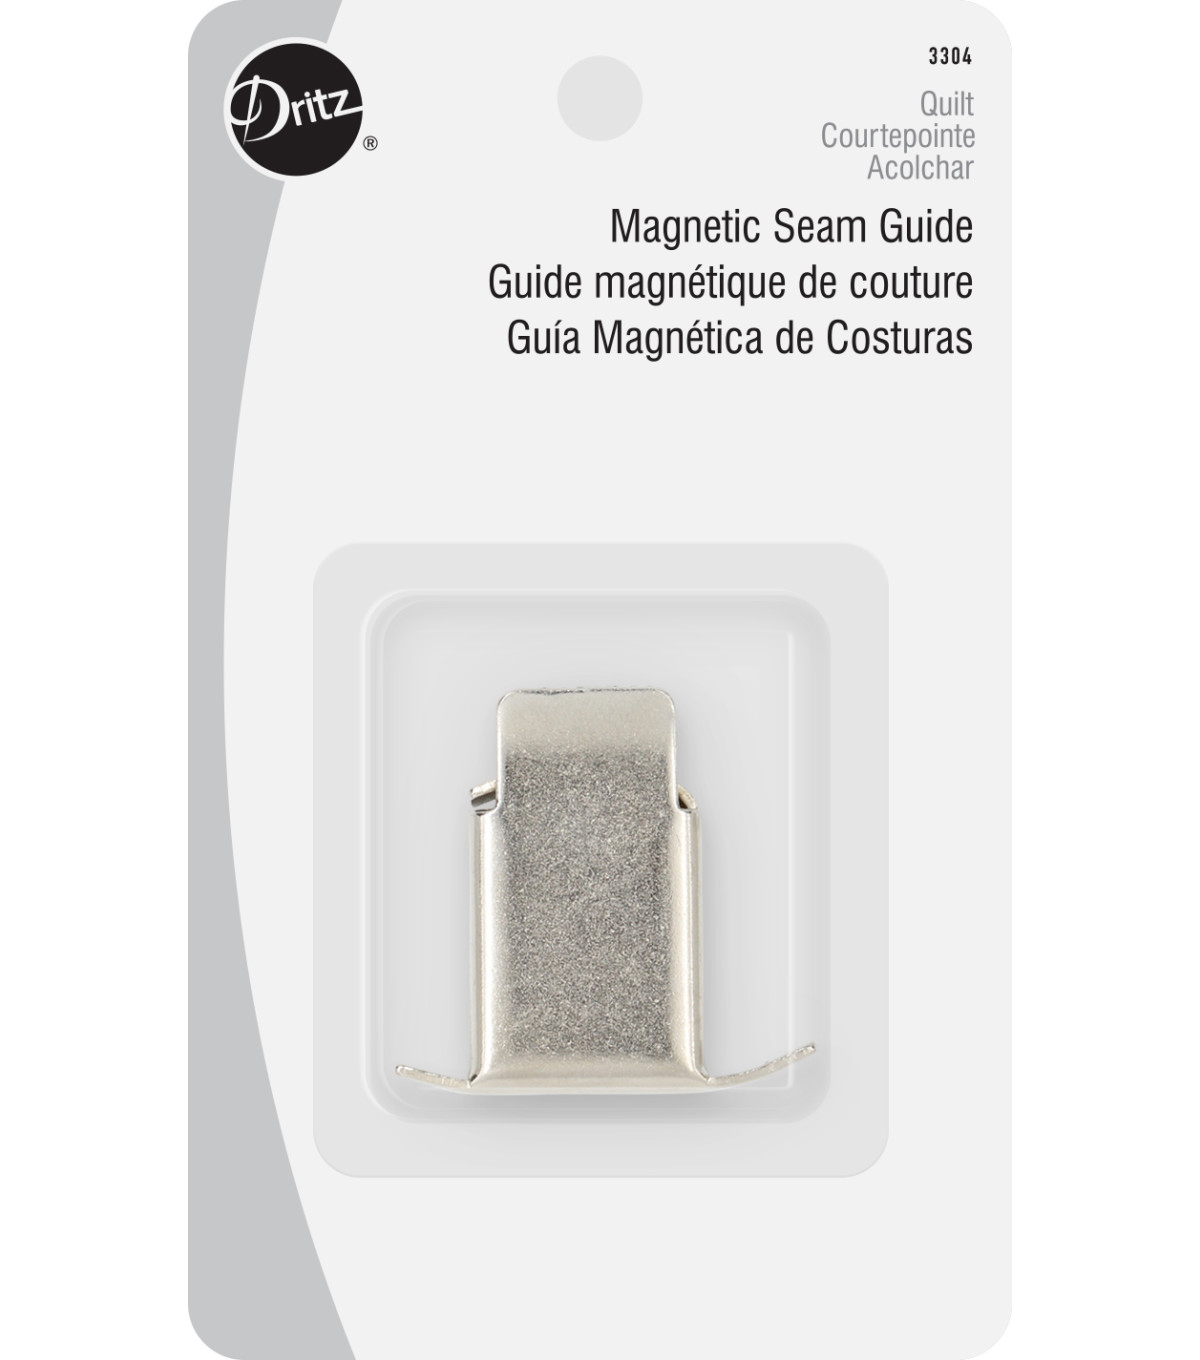 Dritz Quilting Magnetic Quilter\u0027s Seam Guide